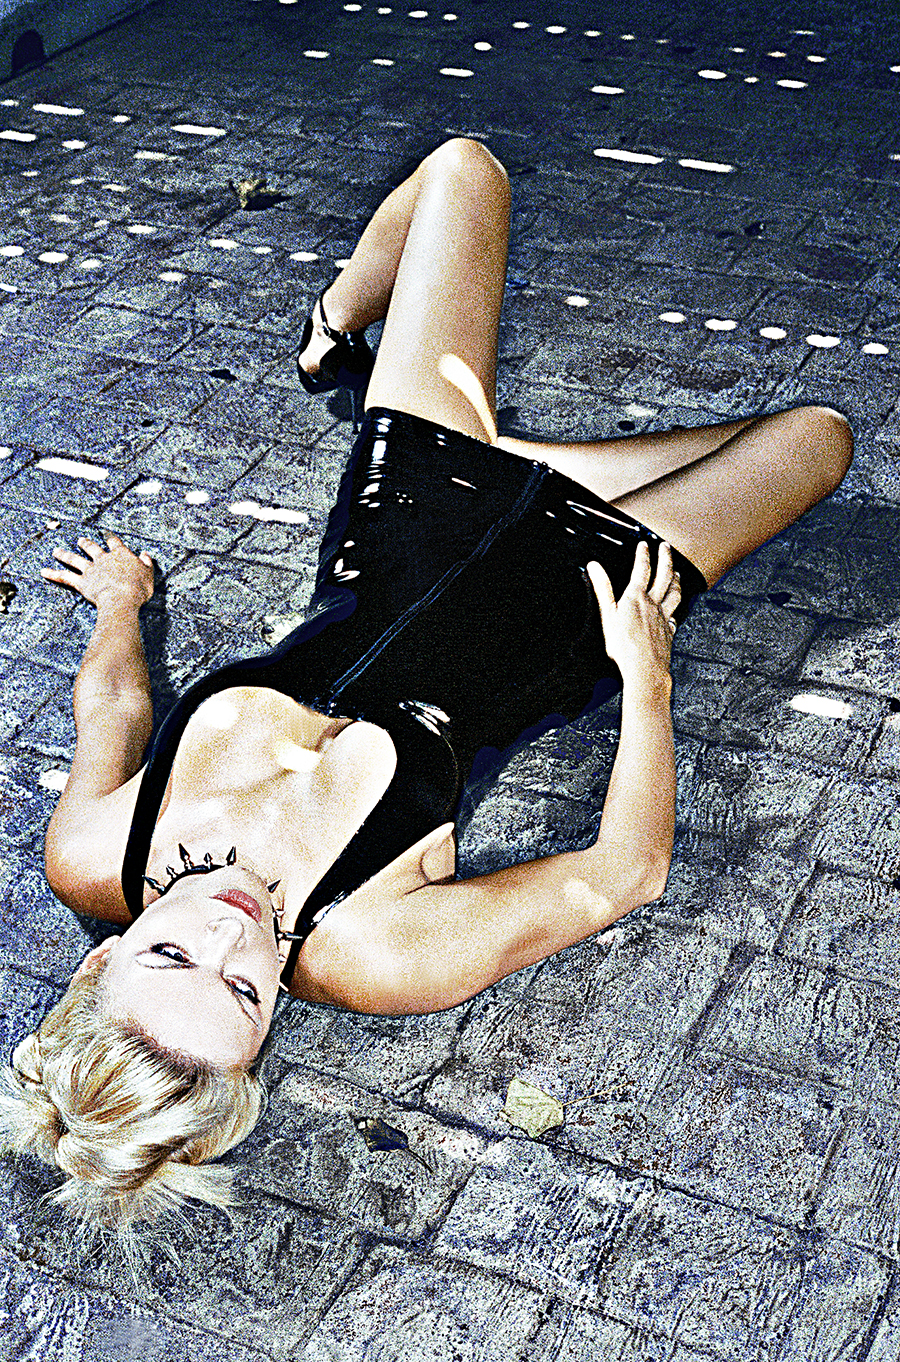 Tony_Ward_erotic_fetish_photography_latex_dress_stone_pavement_collar_blond_model